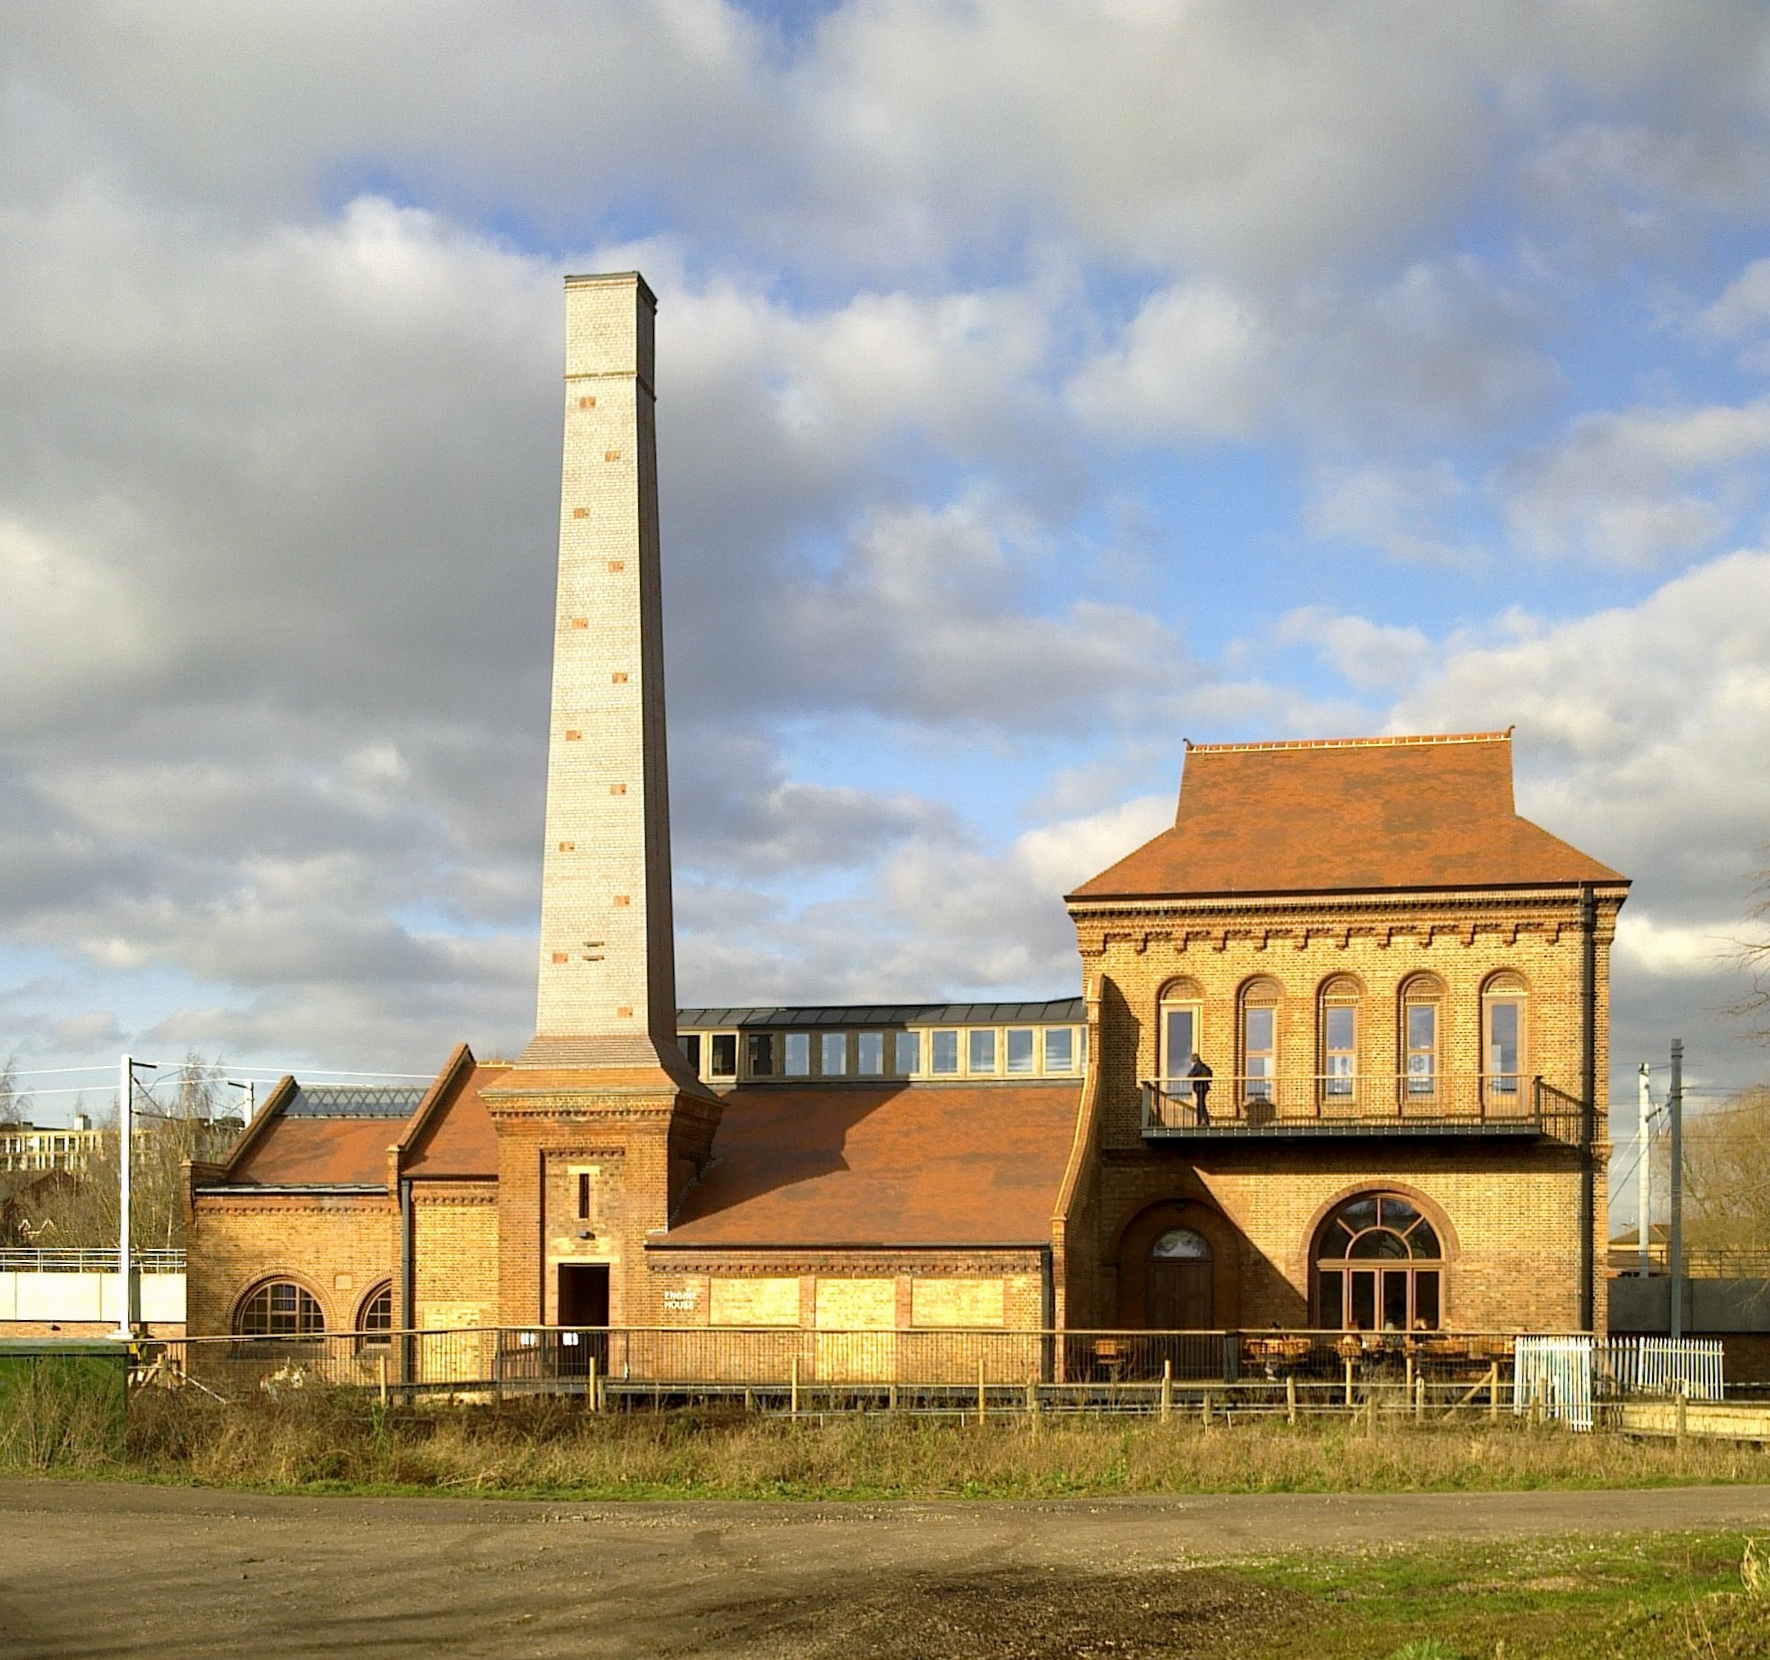 Ferry Lane Pumping Station, 30 Jan 2018 © R Carr